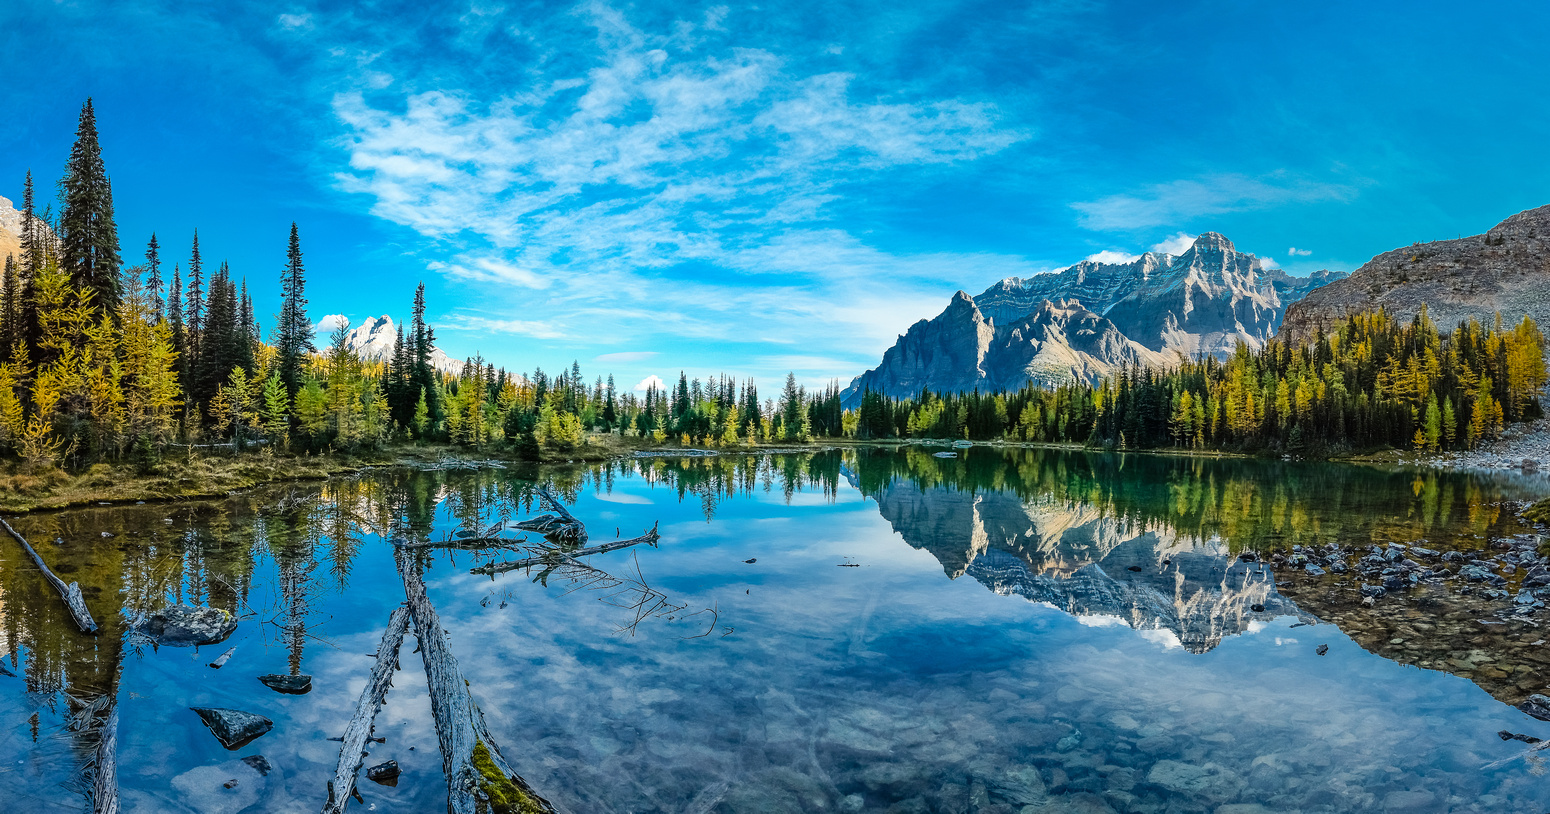 Schaffer Lake never disappoints with great views back towards Wiwaxy Peaks and Mount Huber.